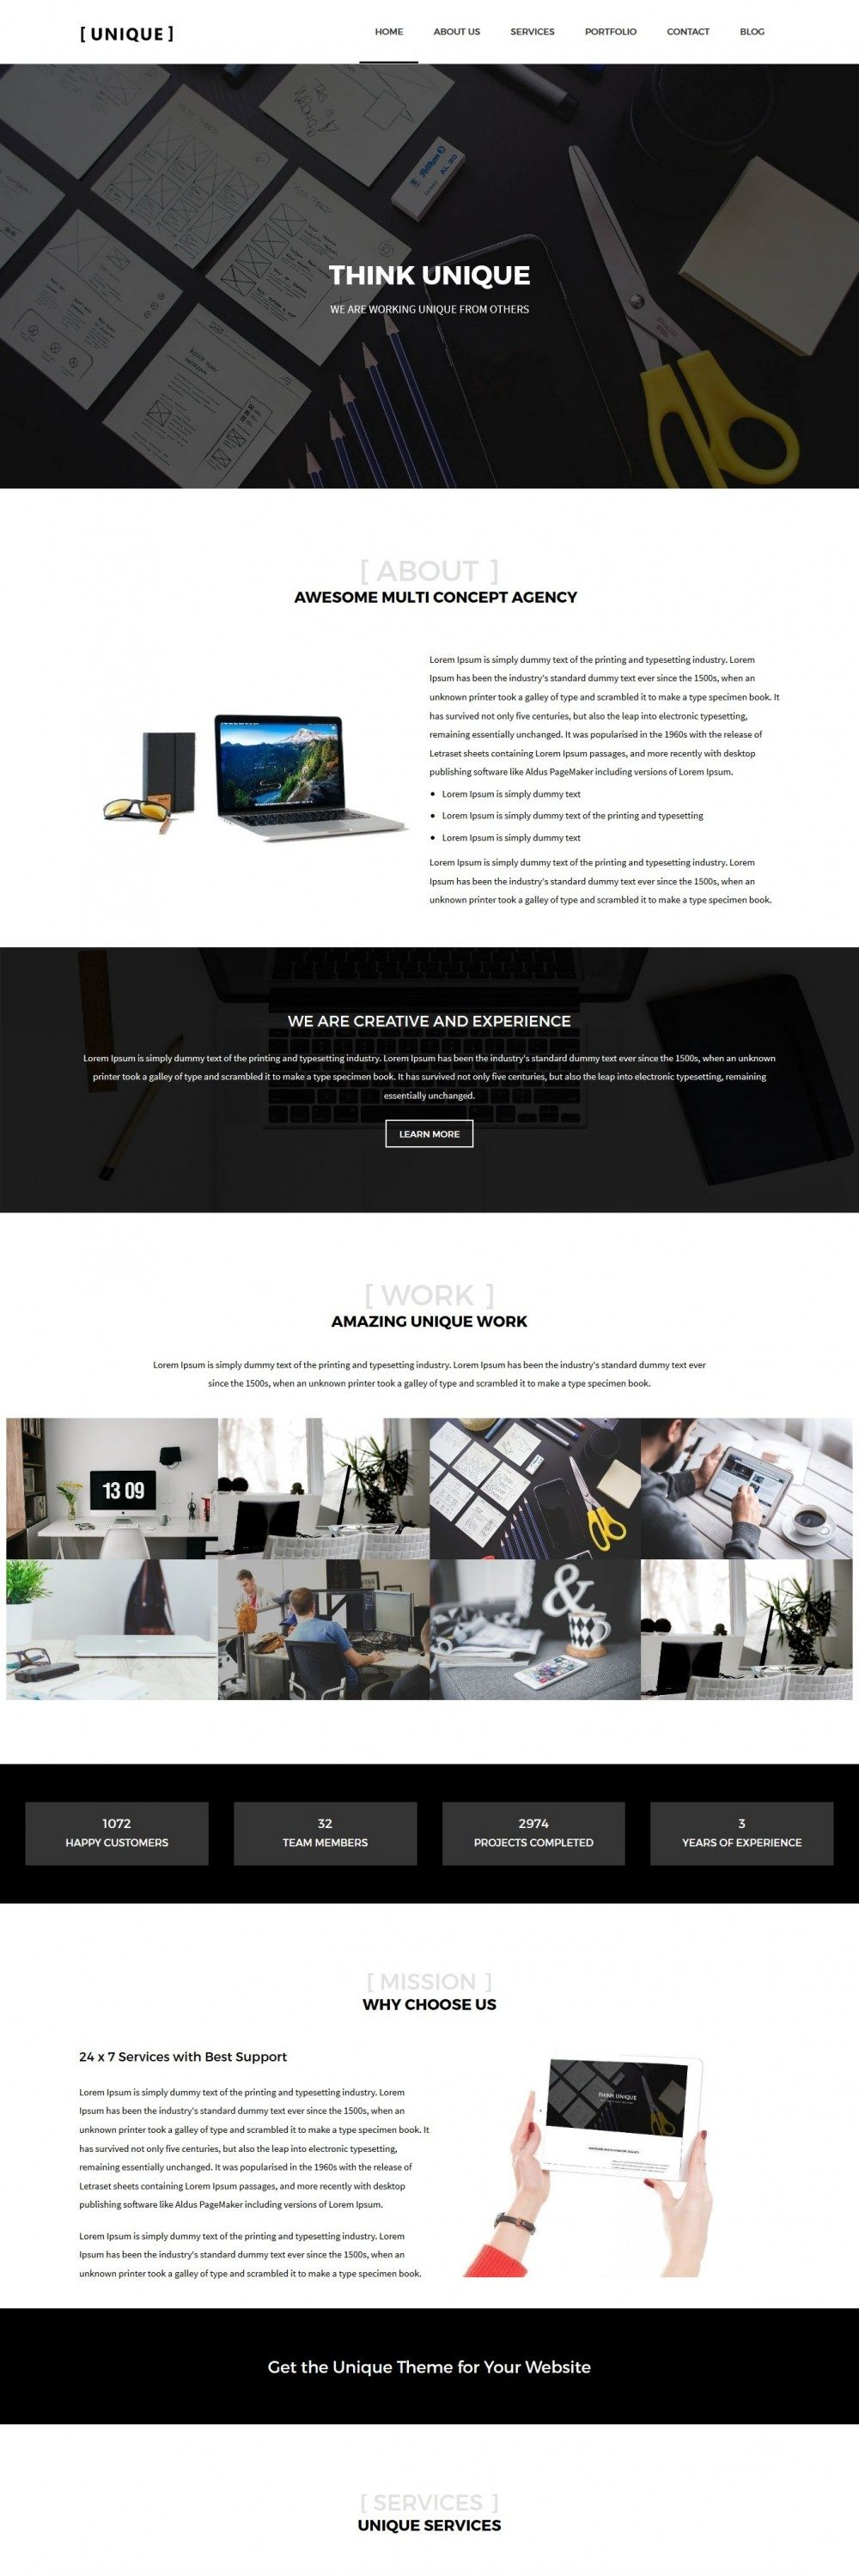 Unique Web Design Agency HTML Template